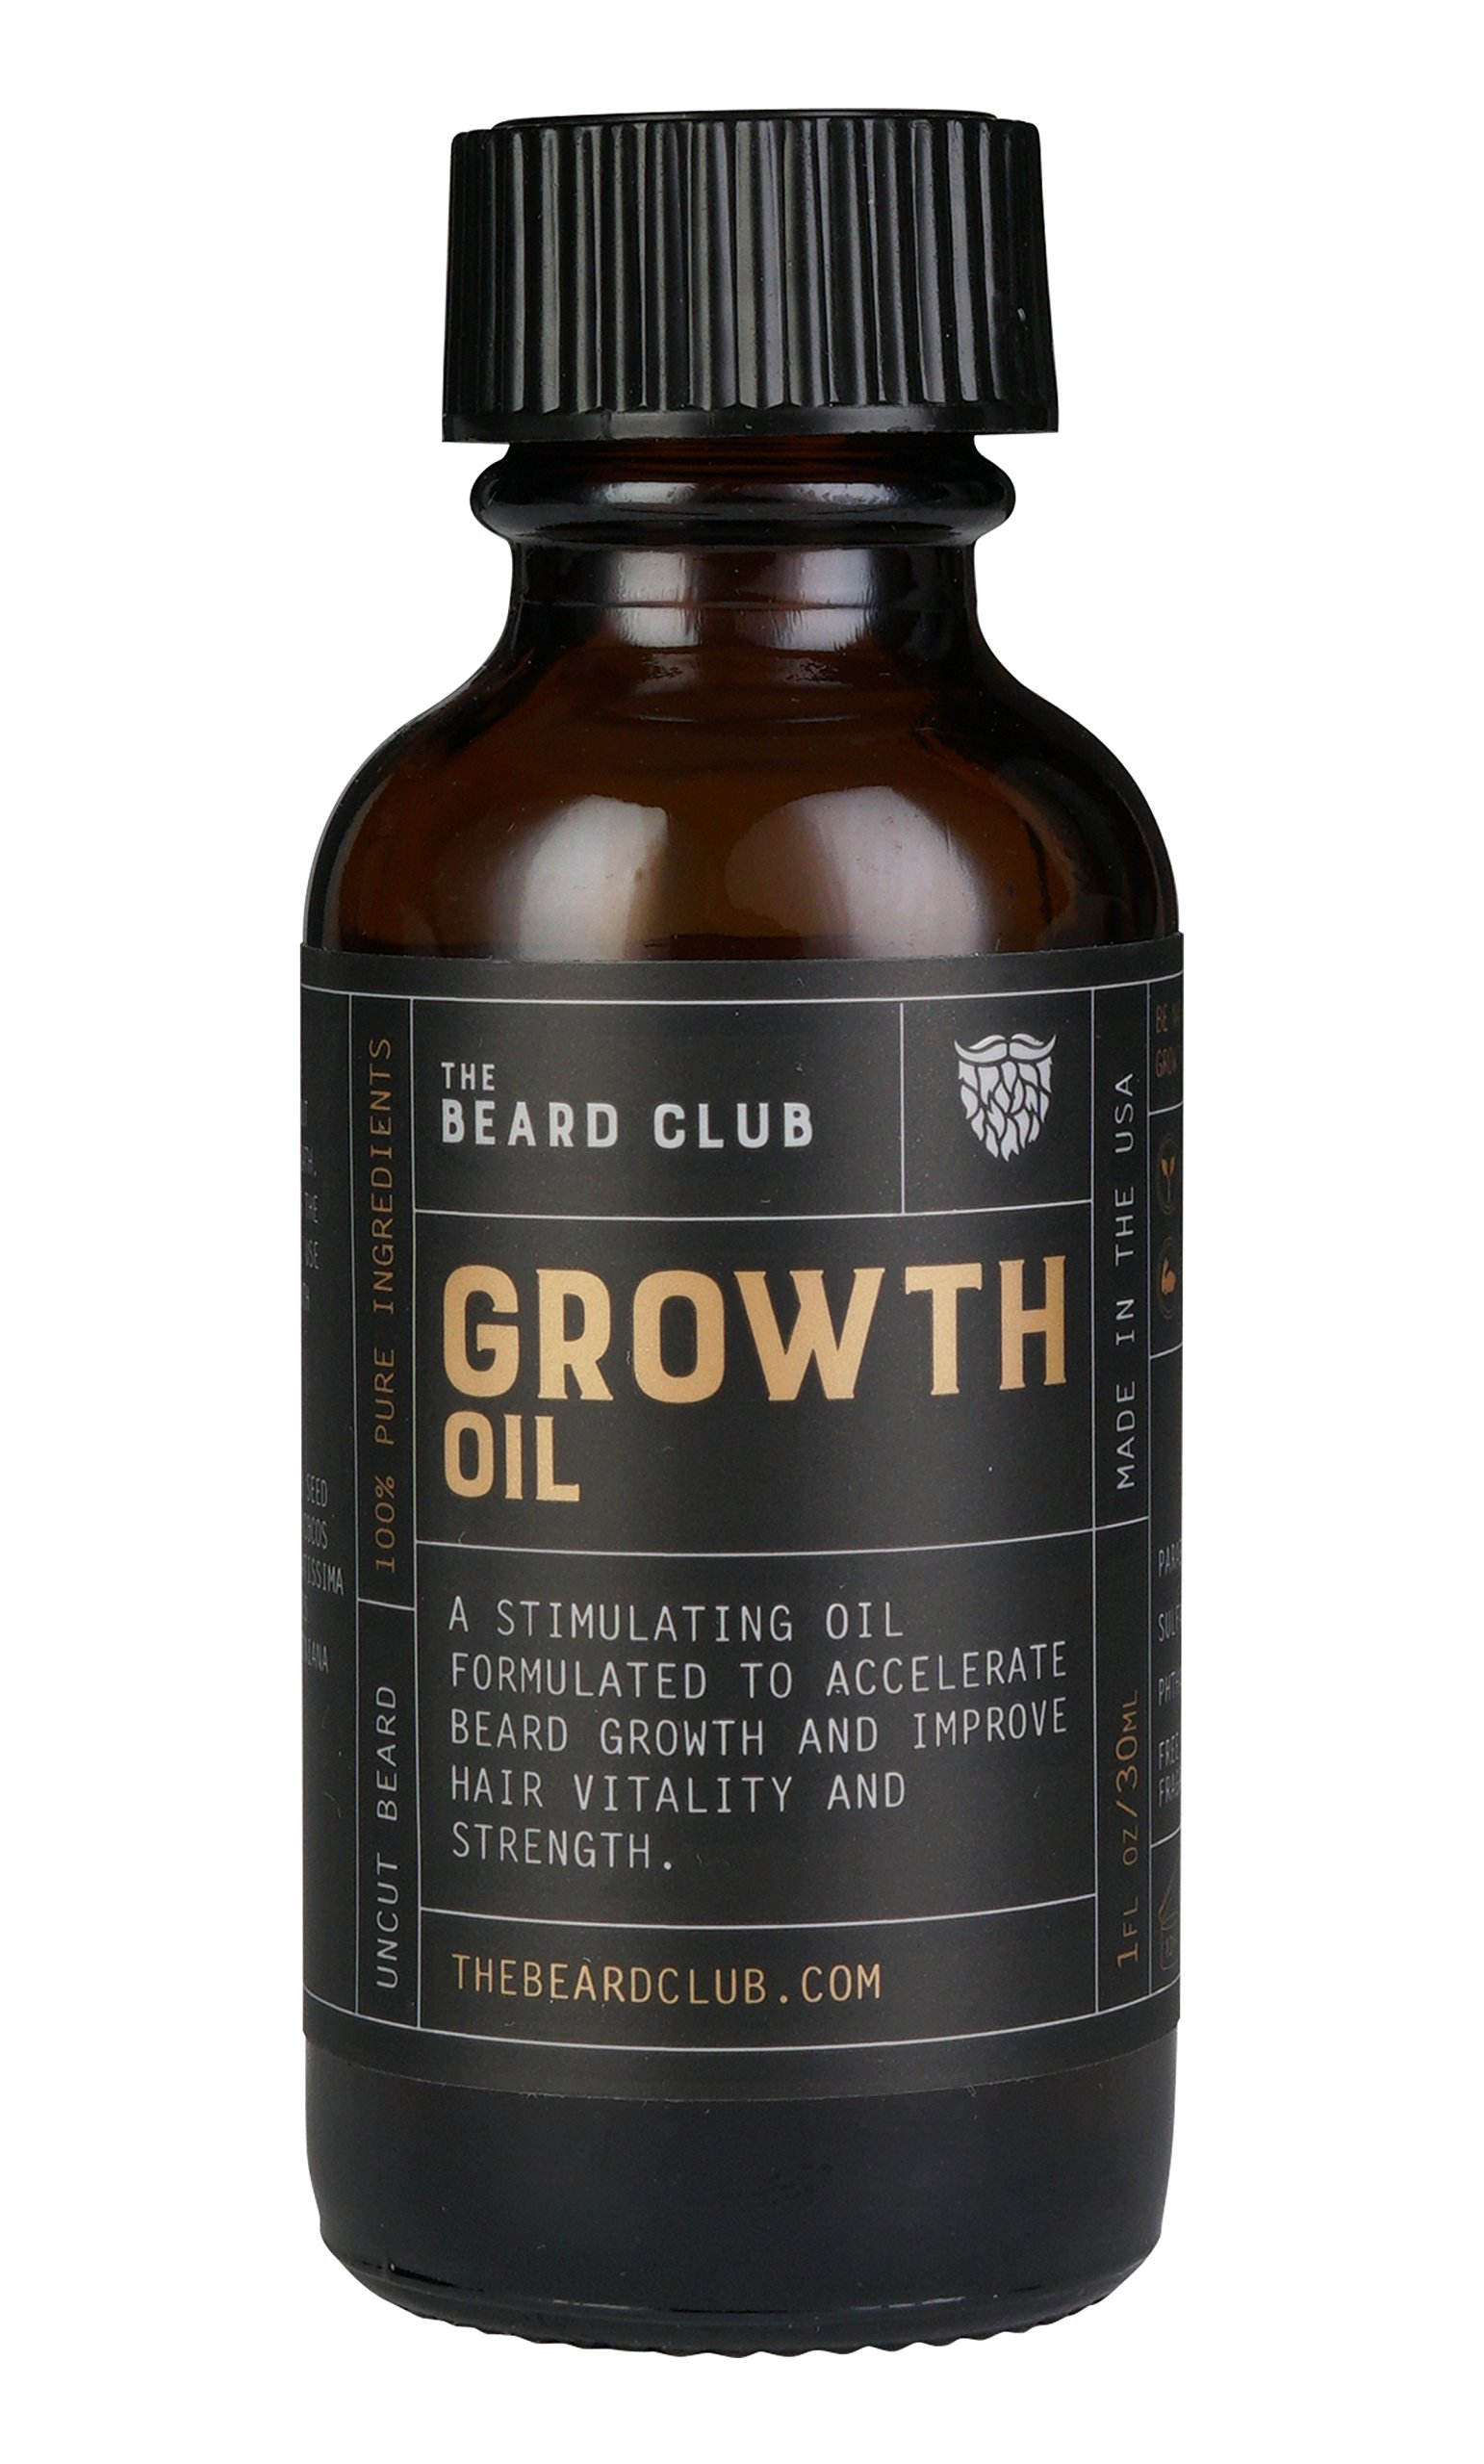 Beard Growth Oil | The Beard Club | #1 Selling Beard & Hair Growth Supplement